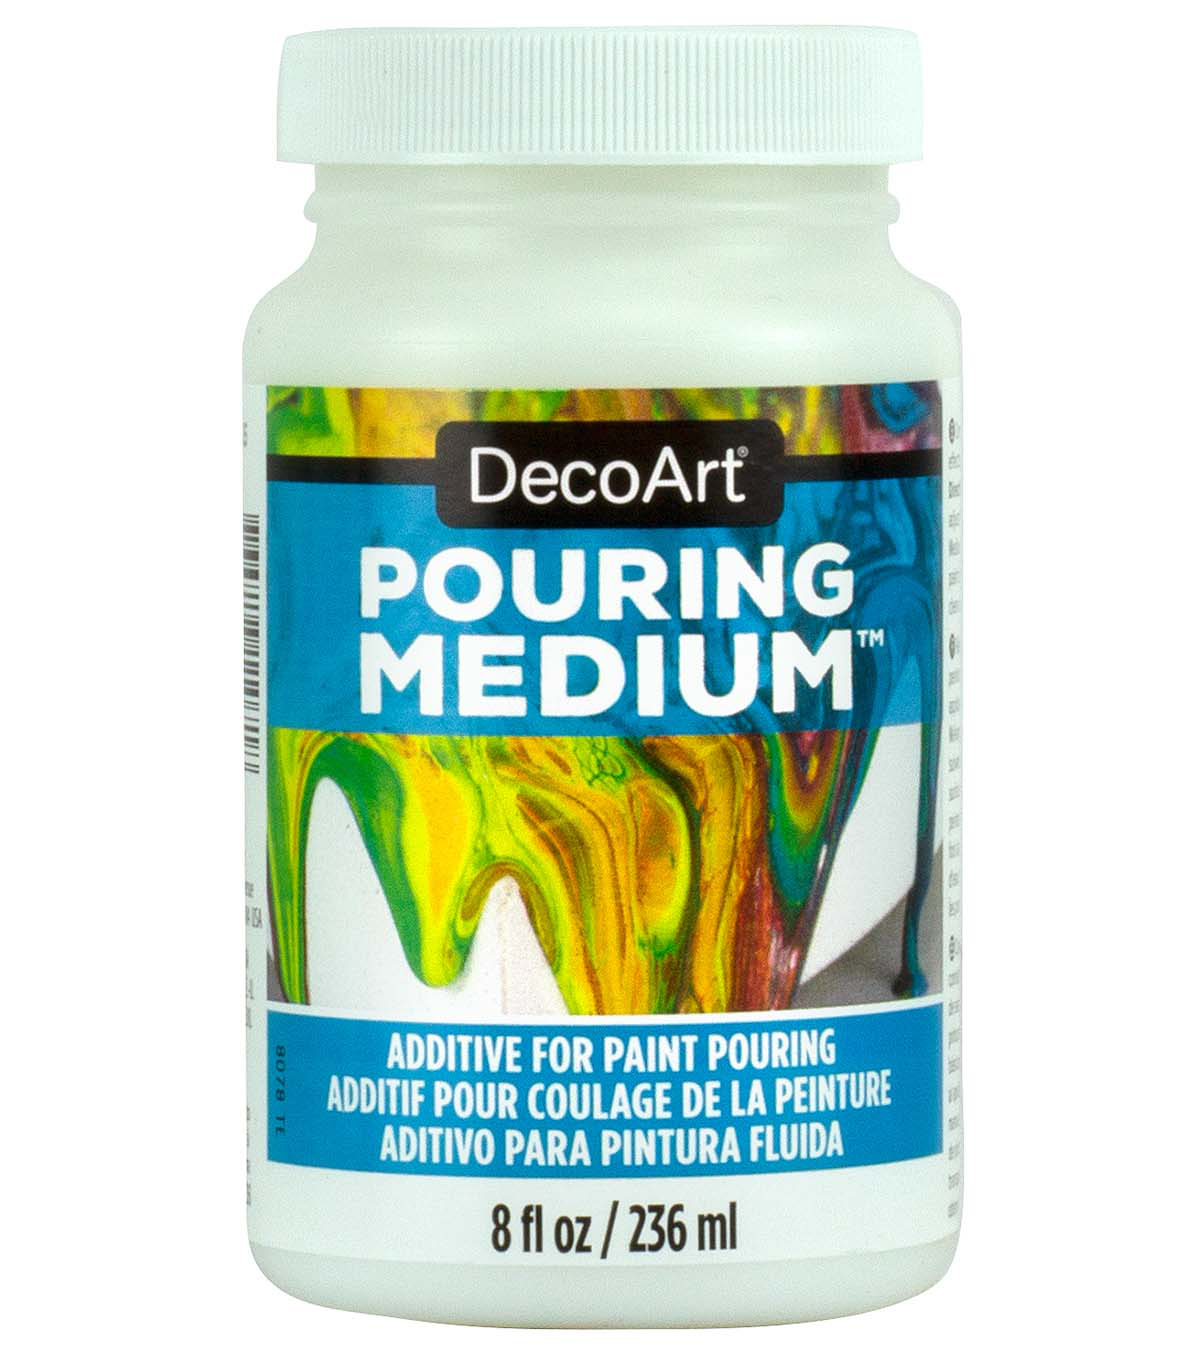 DecoArt 8 fl. oz. Pouring Medium